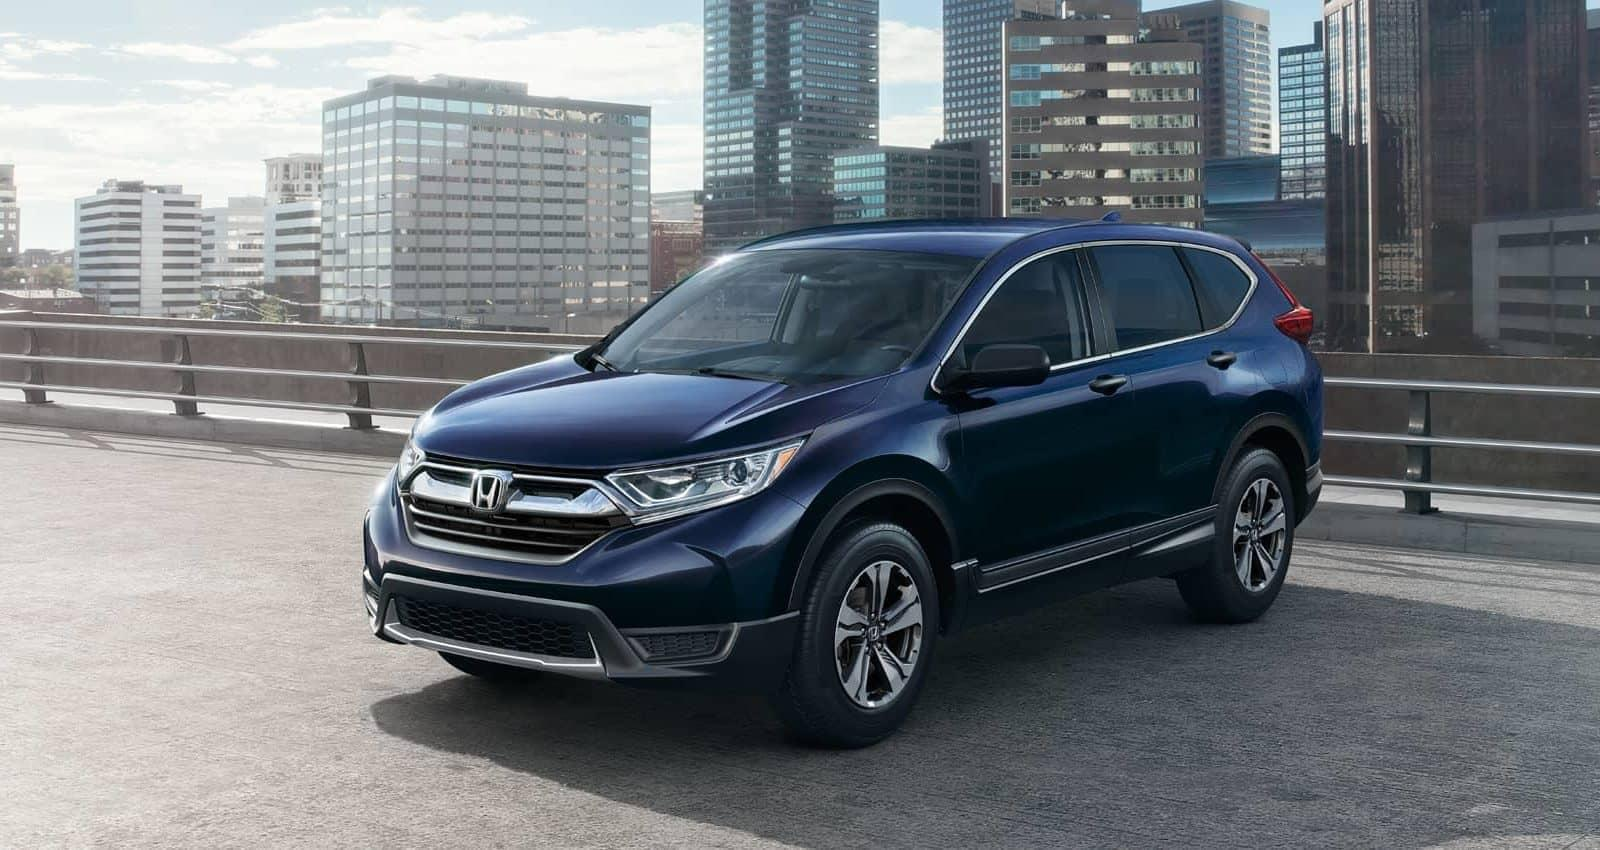 Dark-Blue-CRV-1600x850